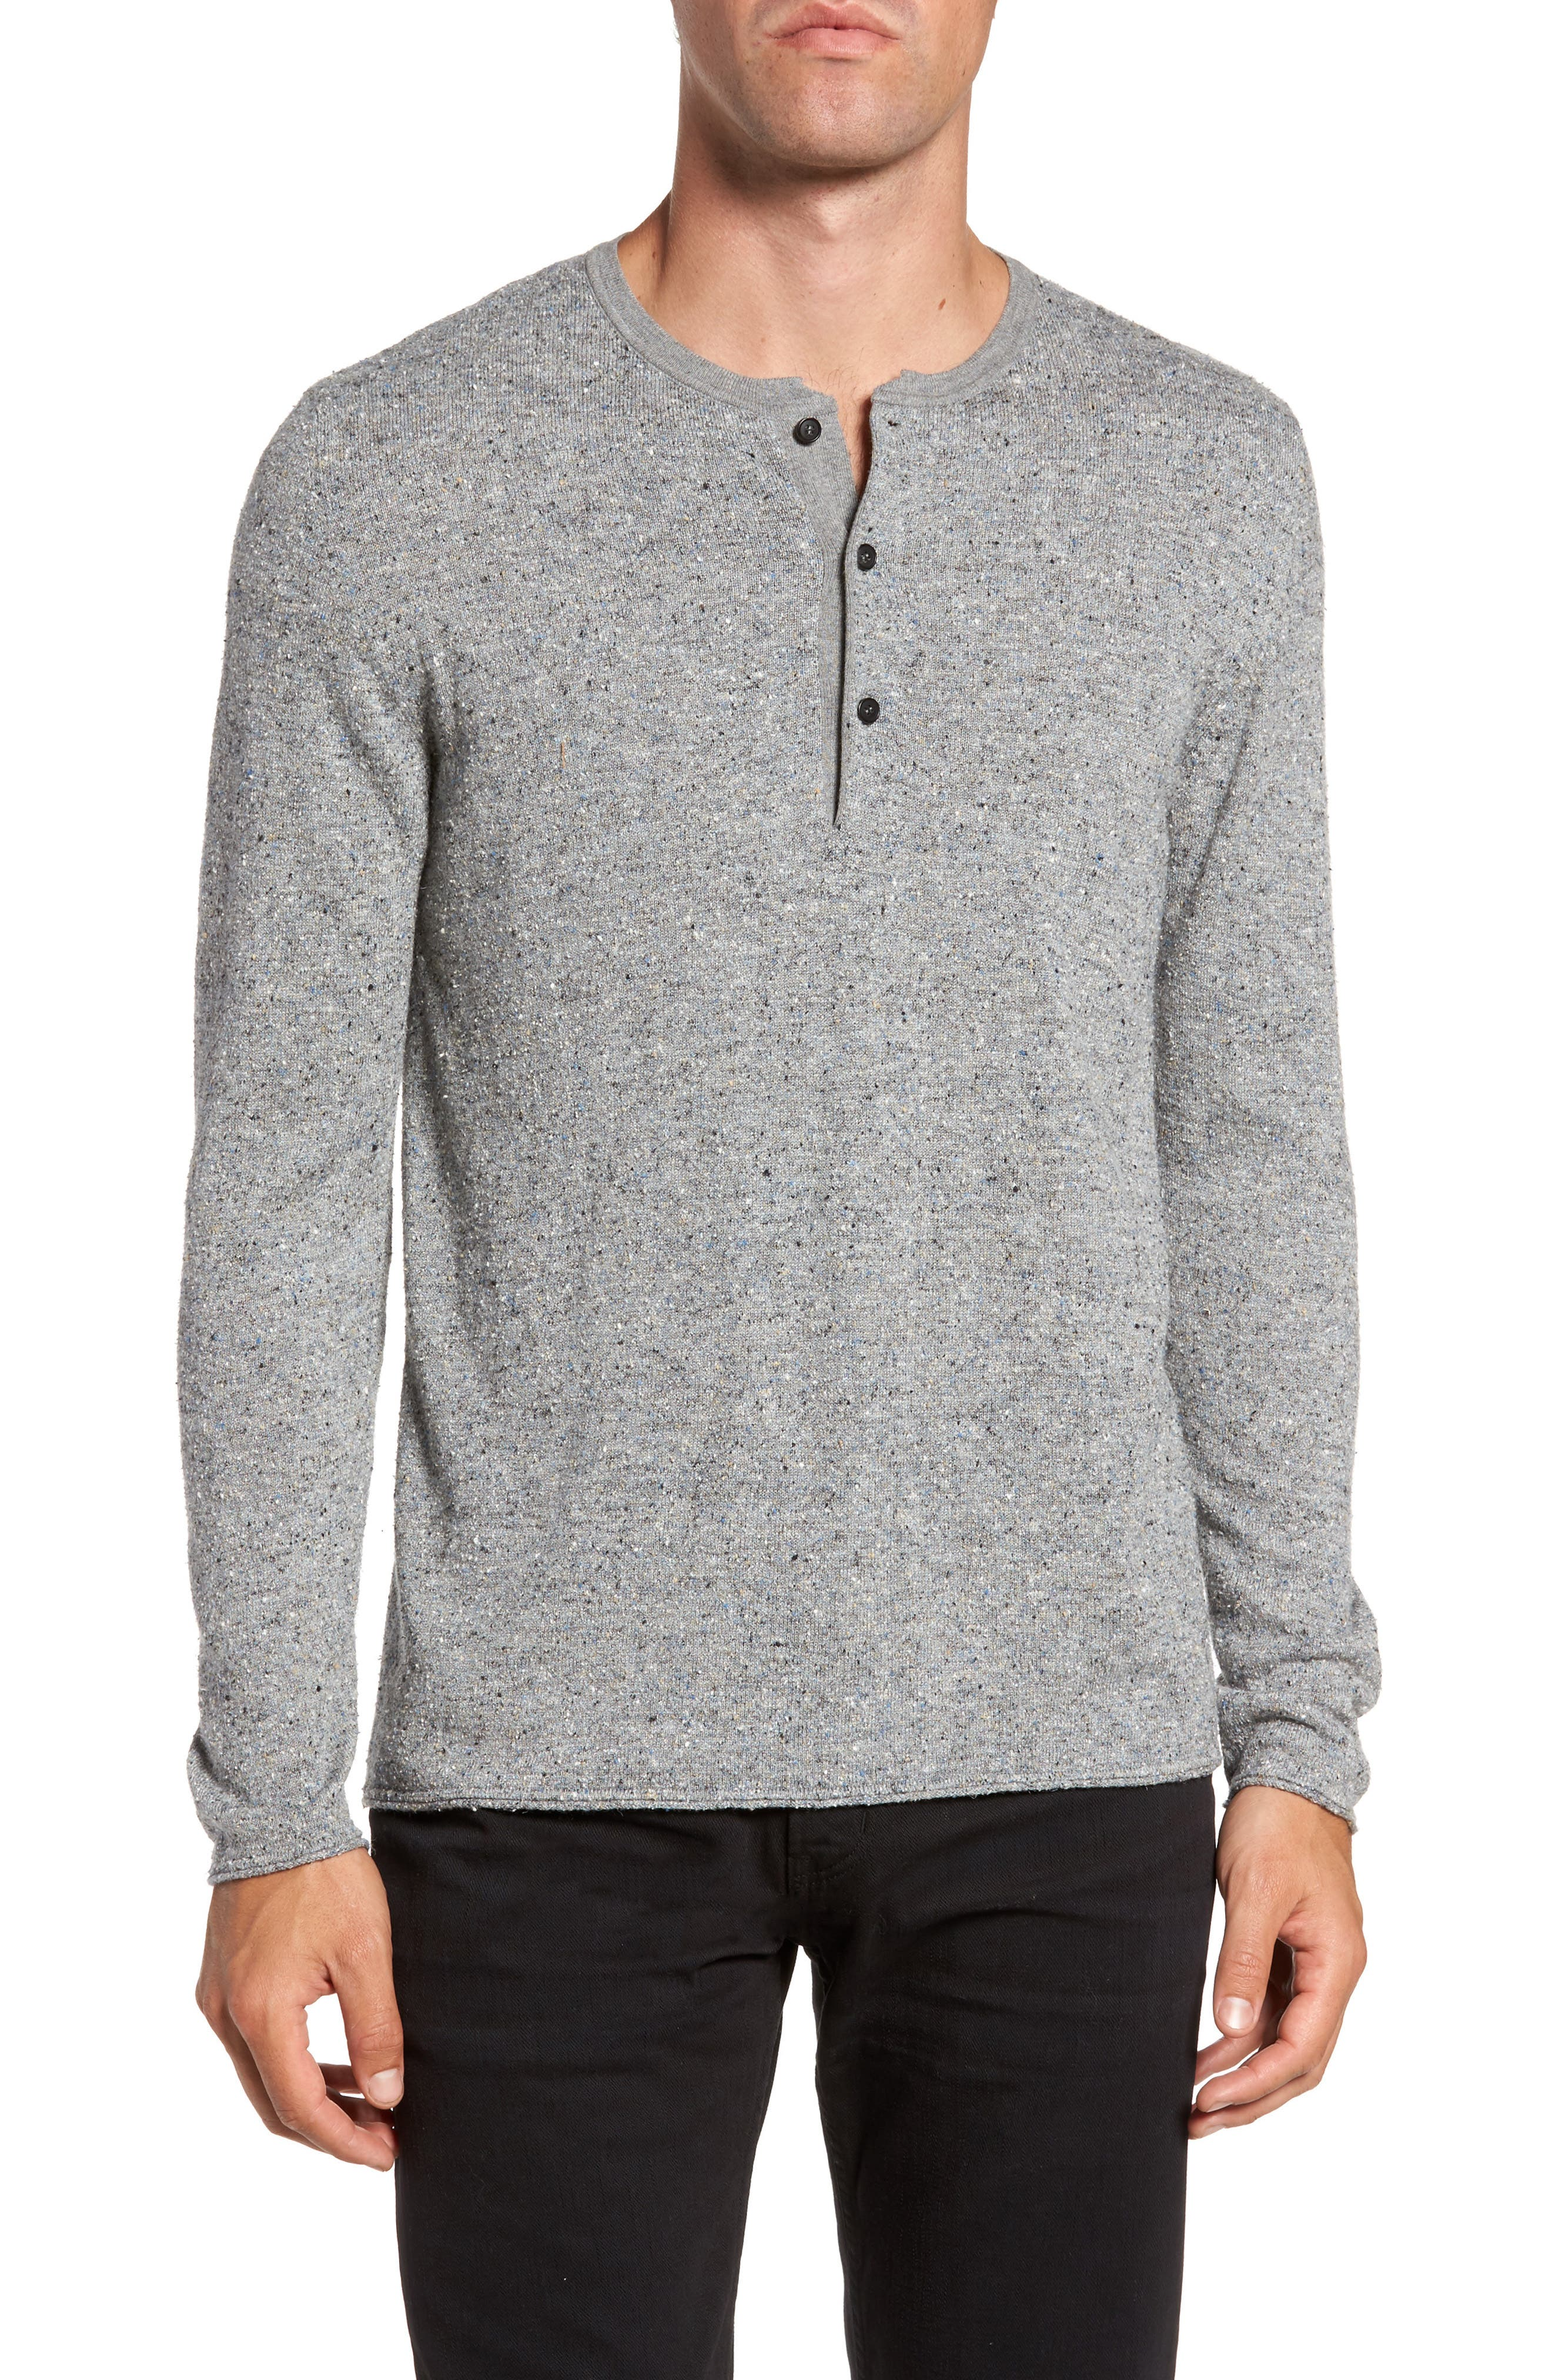 Speckled Henley Sweater,                             Main thumbnail 1, color,                             Grey Mix